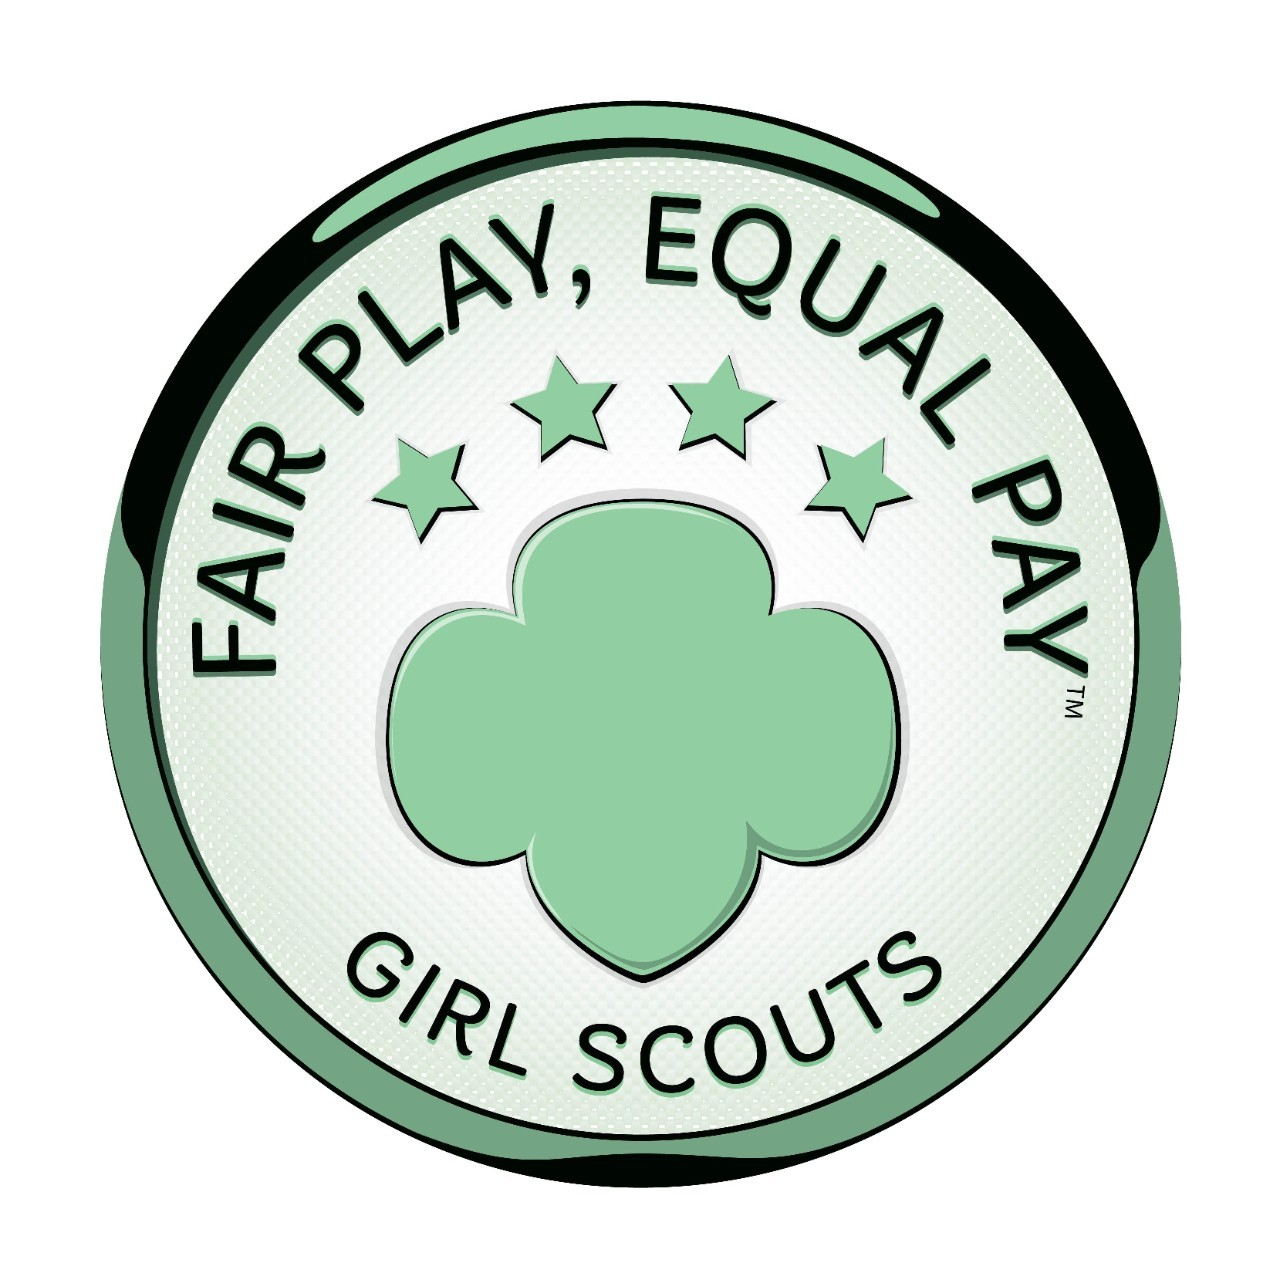 Fair Play, Equal Pay - Certification Seal